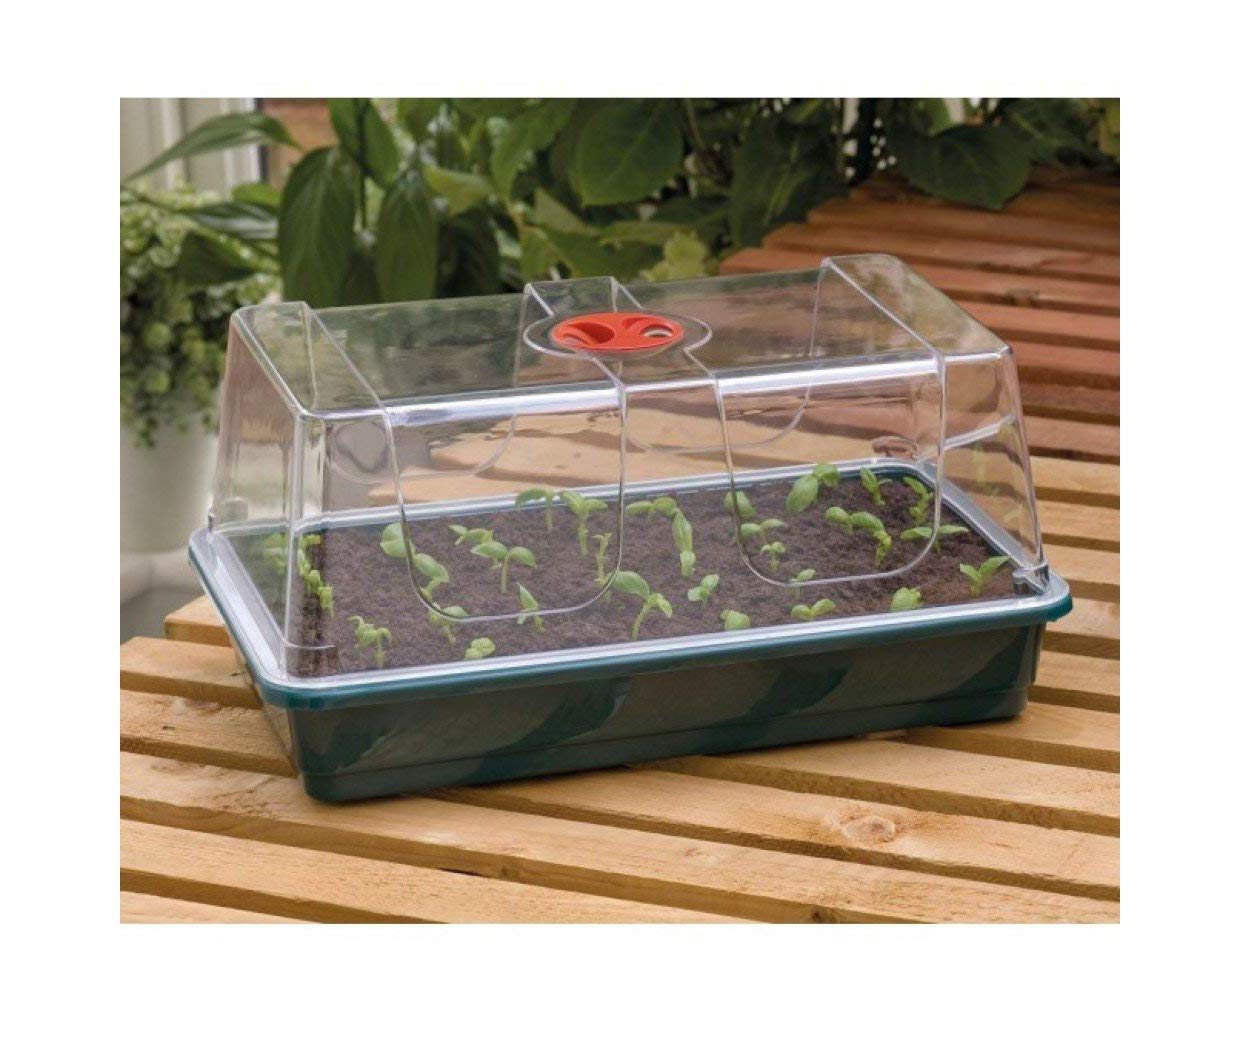 Britten & James Professional extra height unheated propagator. Uses our standard seed tray as a base but the top quality clear top has extra high sides to allow for more plant development before removing from the protection of the propagator. Simple,